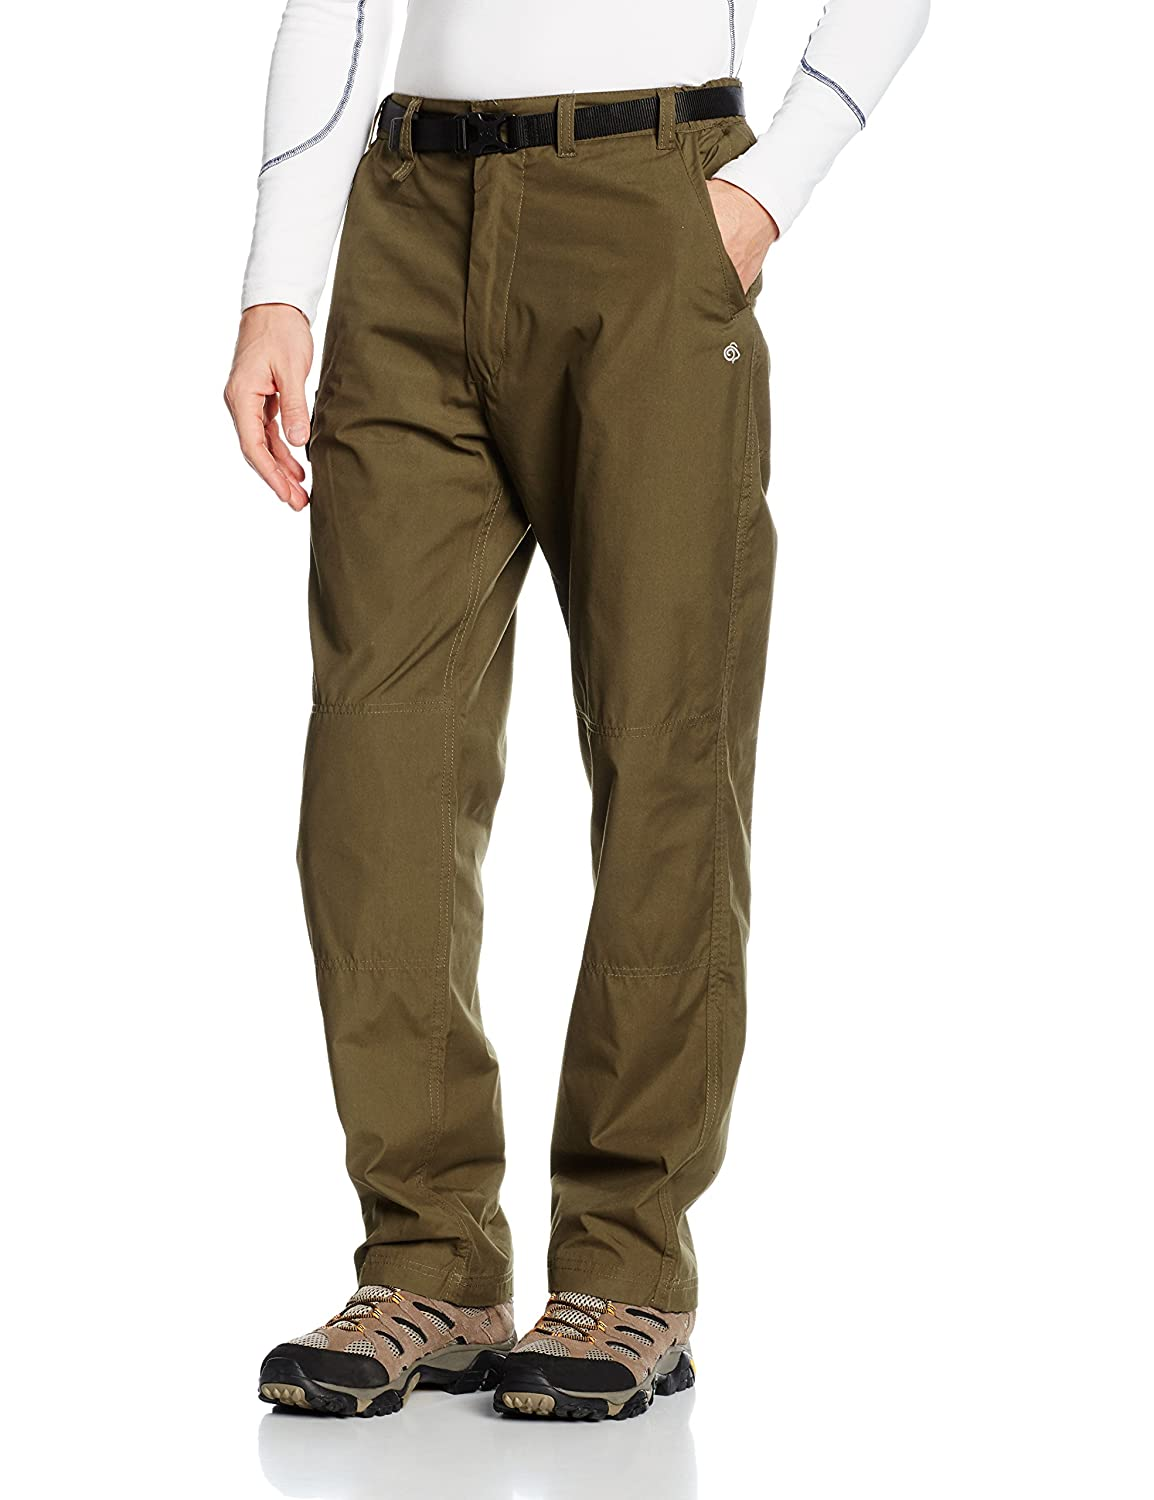 Craghoppers Men's Classic Kiwi Trousers CMJ100L